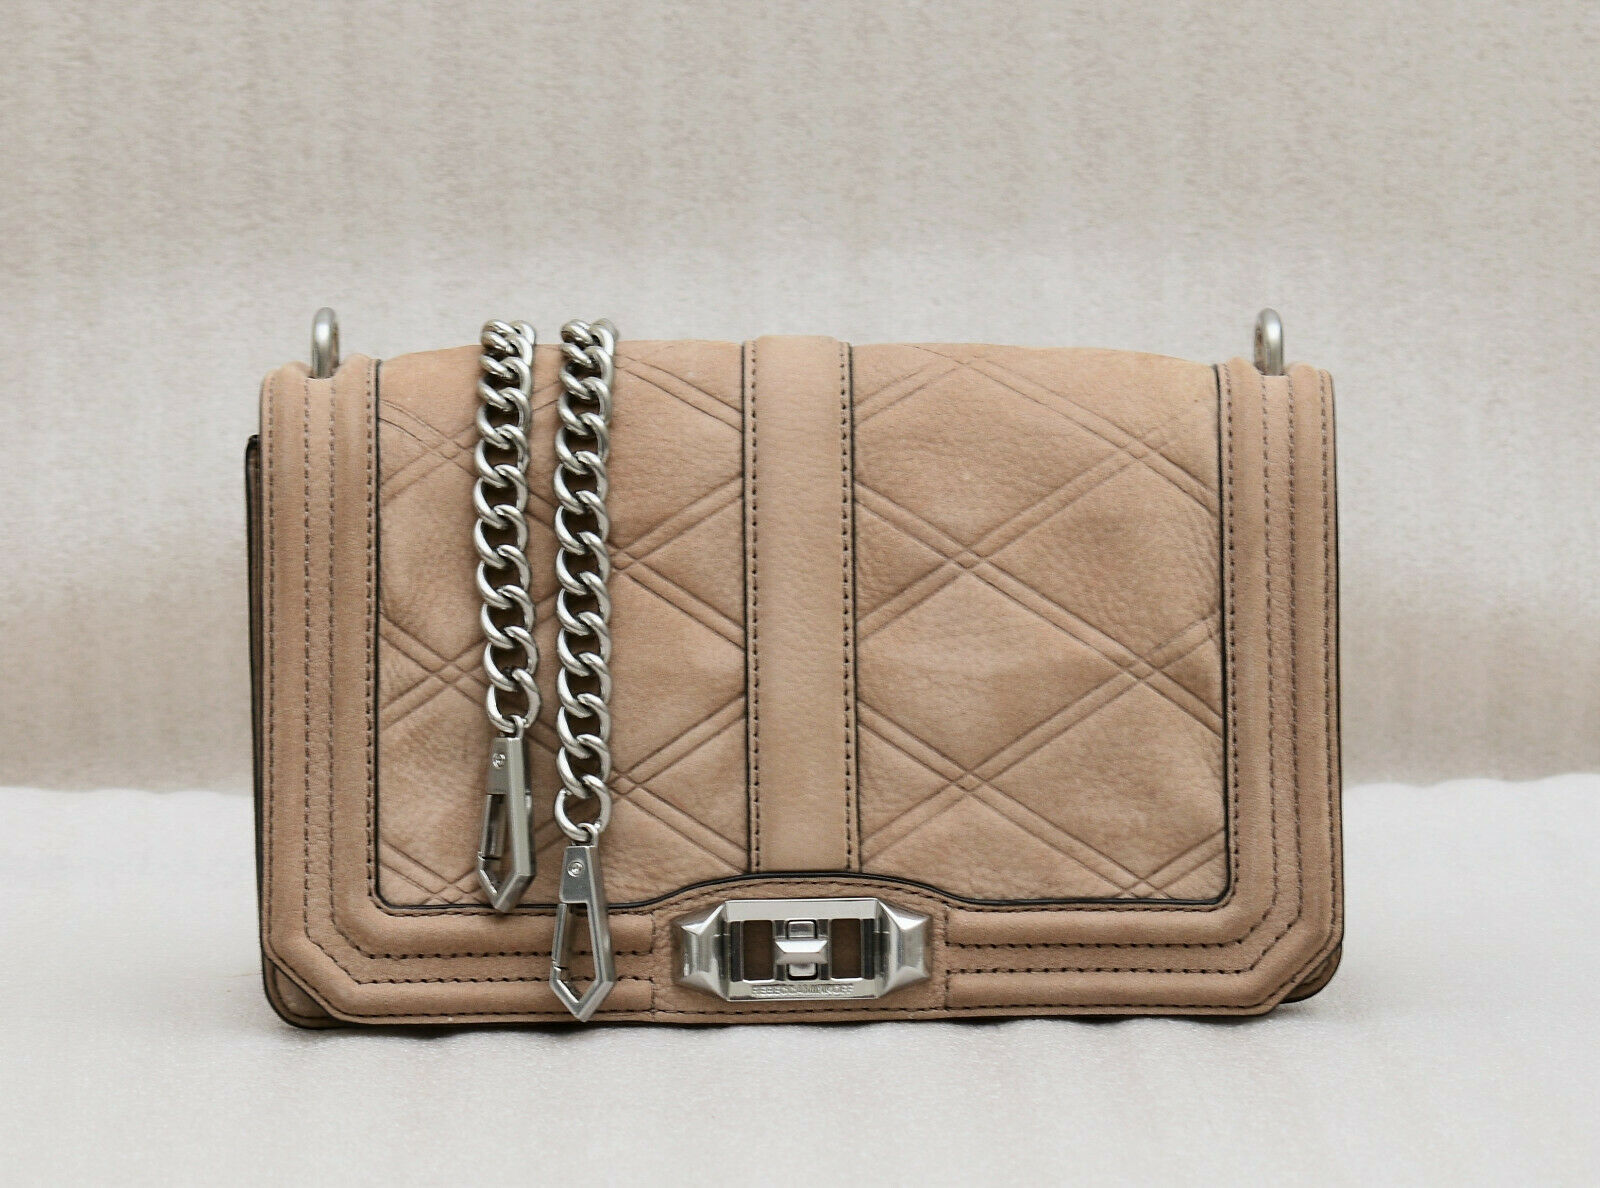 Primary image for Rebecca Minkoff Love Tooled Leather Crossbody Bag - Beige ( Retail - $295)